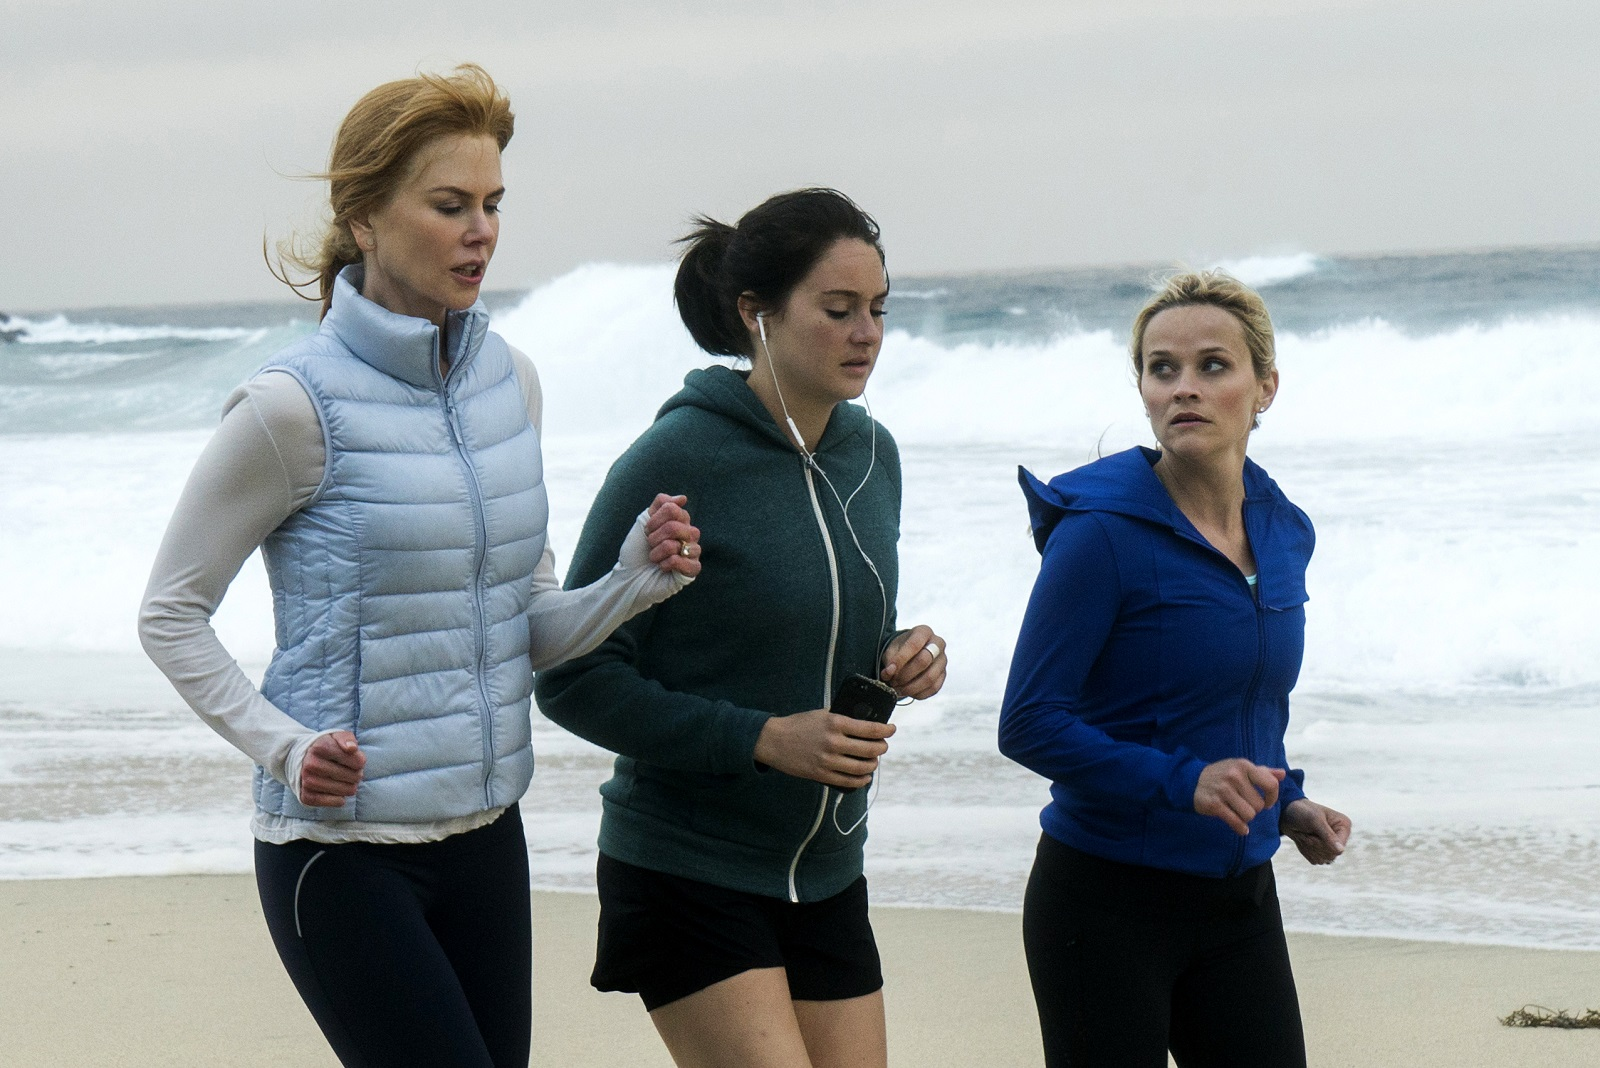 Nicole Kidman, Shailene Woodley and Reese Witherspoon in HBO's 'Big Little Lies.' (Hilary Bronwyn Gayle, HBO)